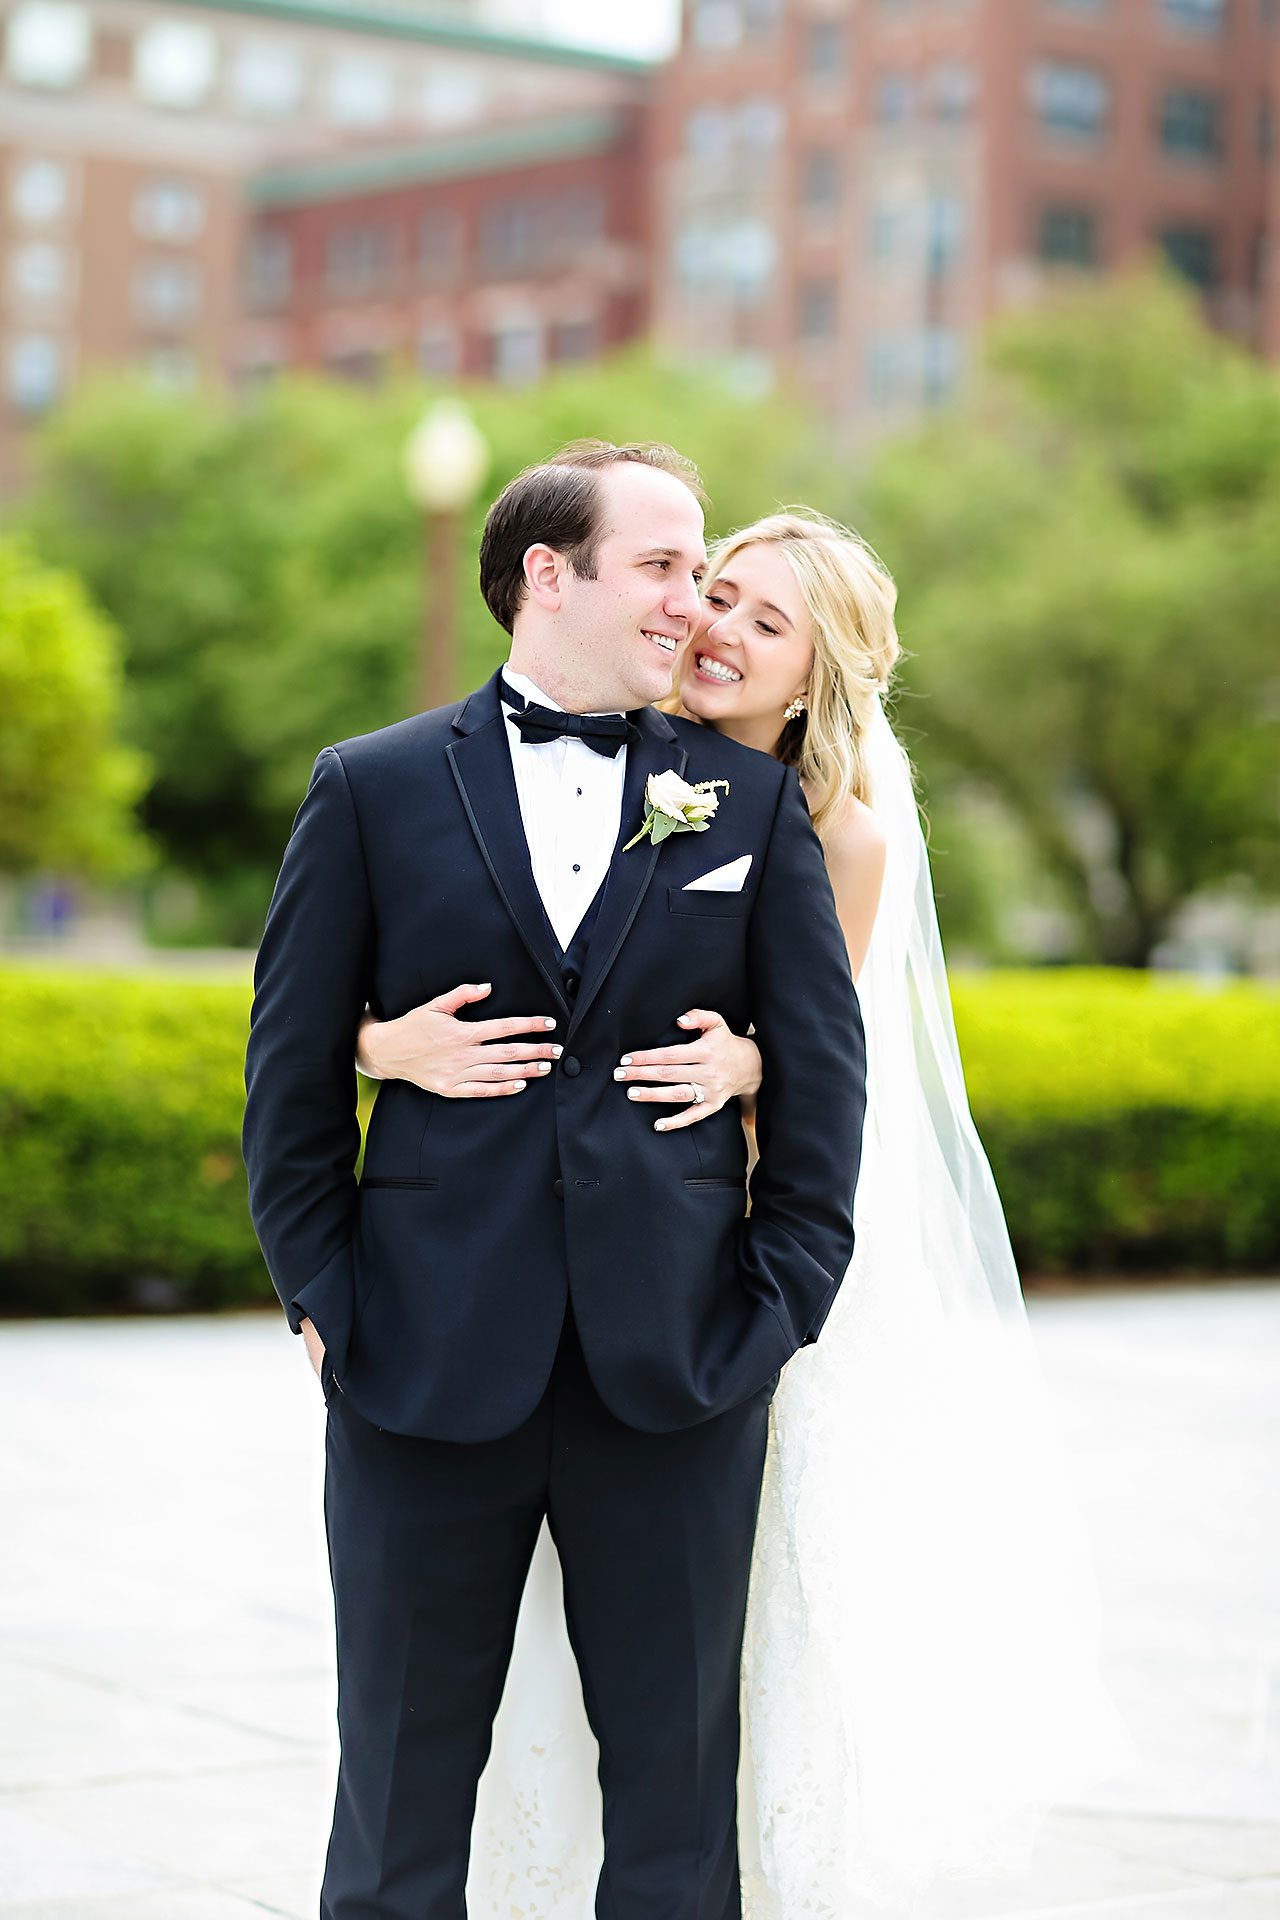 Allison Jeff Union Station Crowne Plaza Indianapolis wedding 201